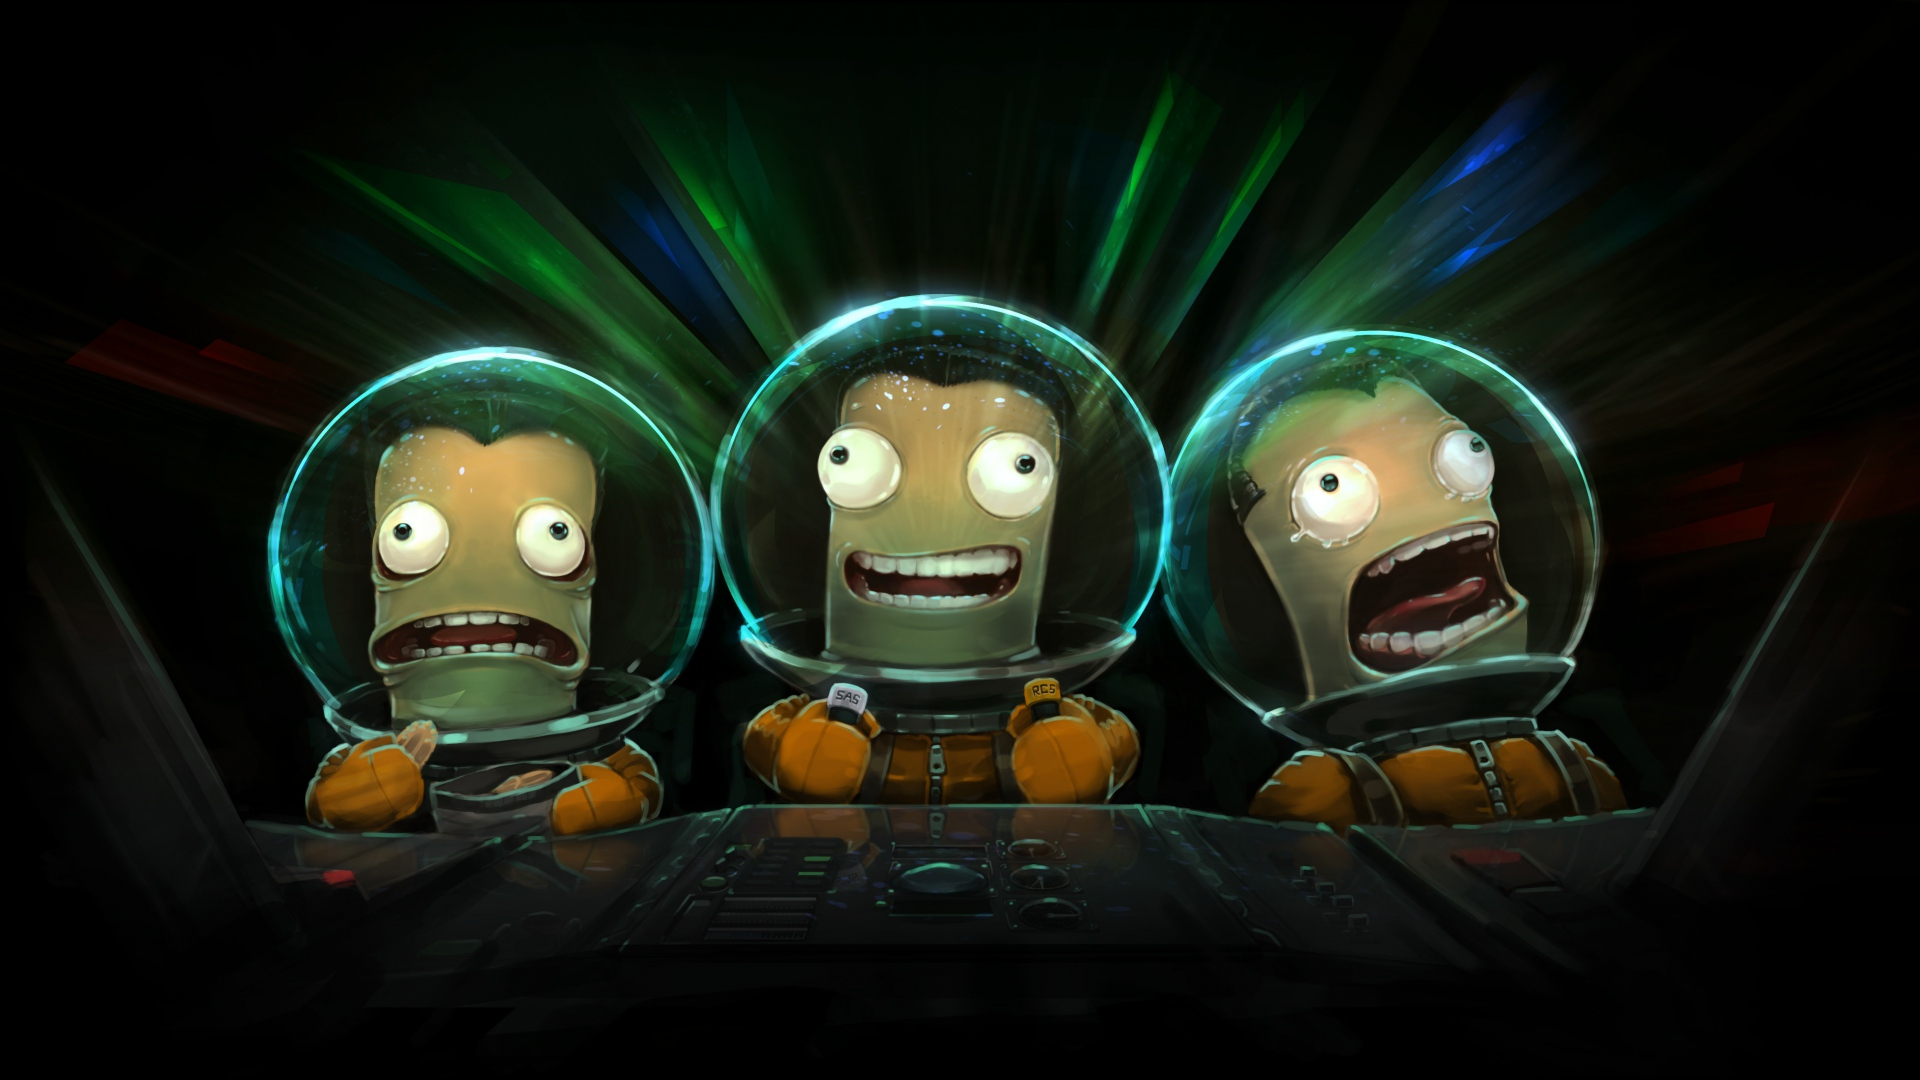 Rockstar and 2K Parent Company Take-Two Interactive Acquires Kerbal